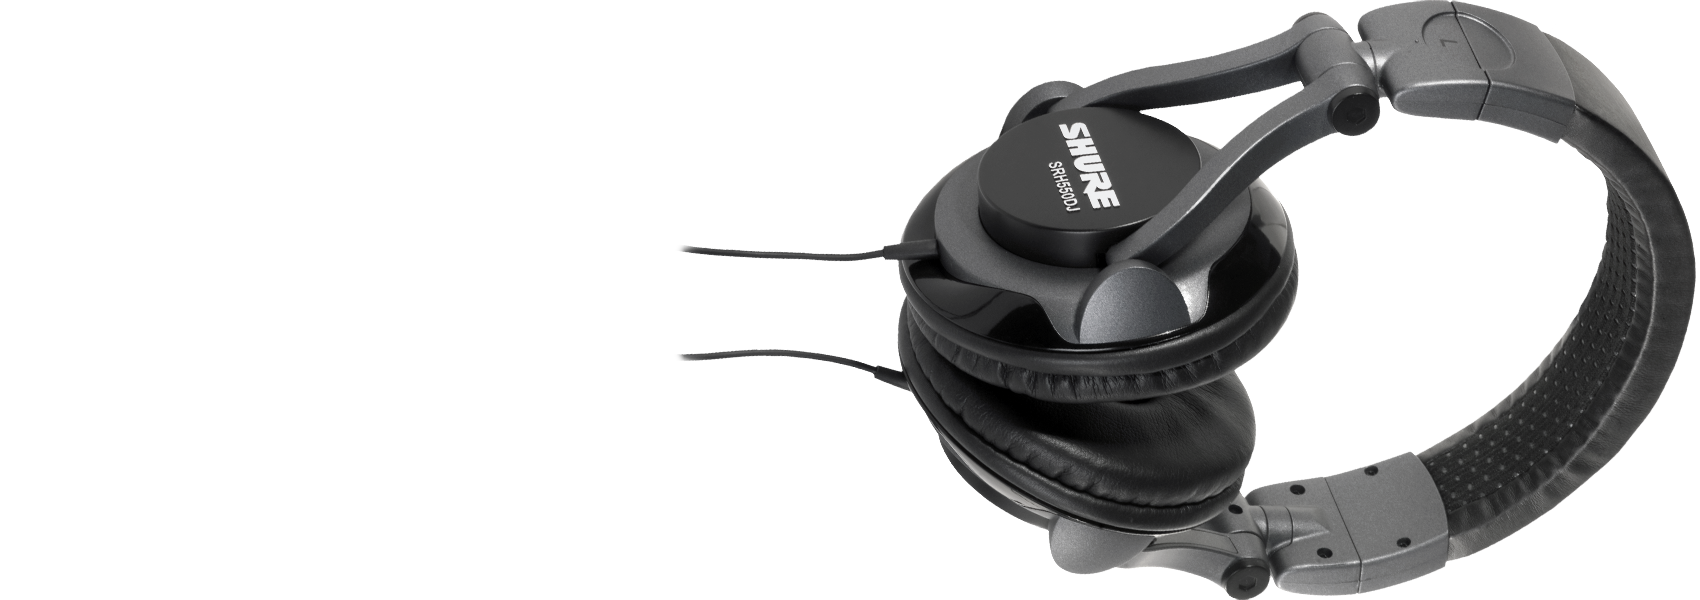 Illustration Shure SRH550DJ DJ Headphones